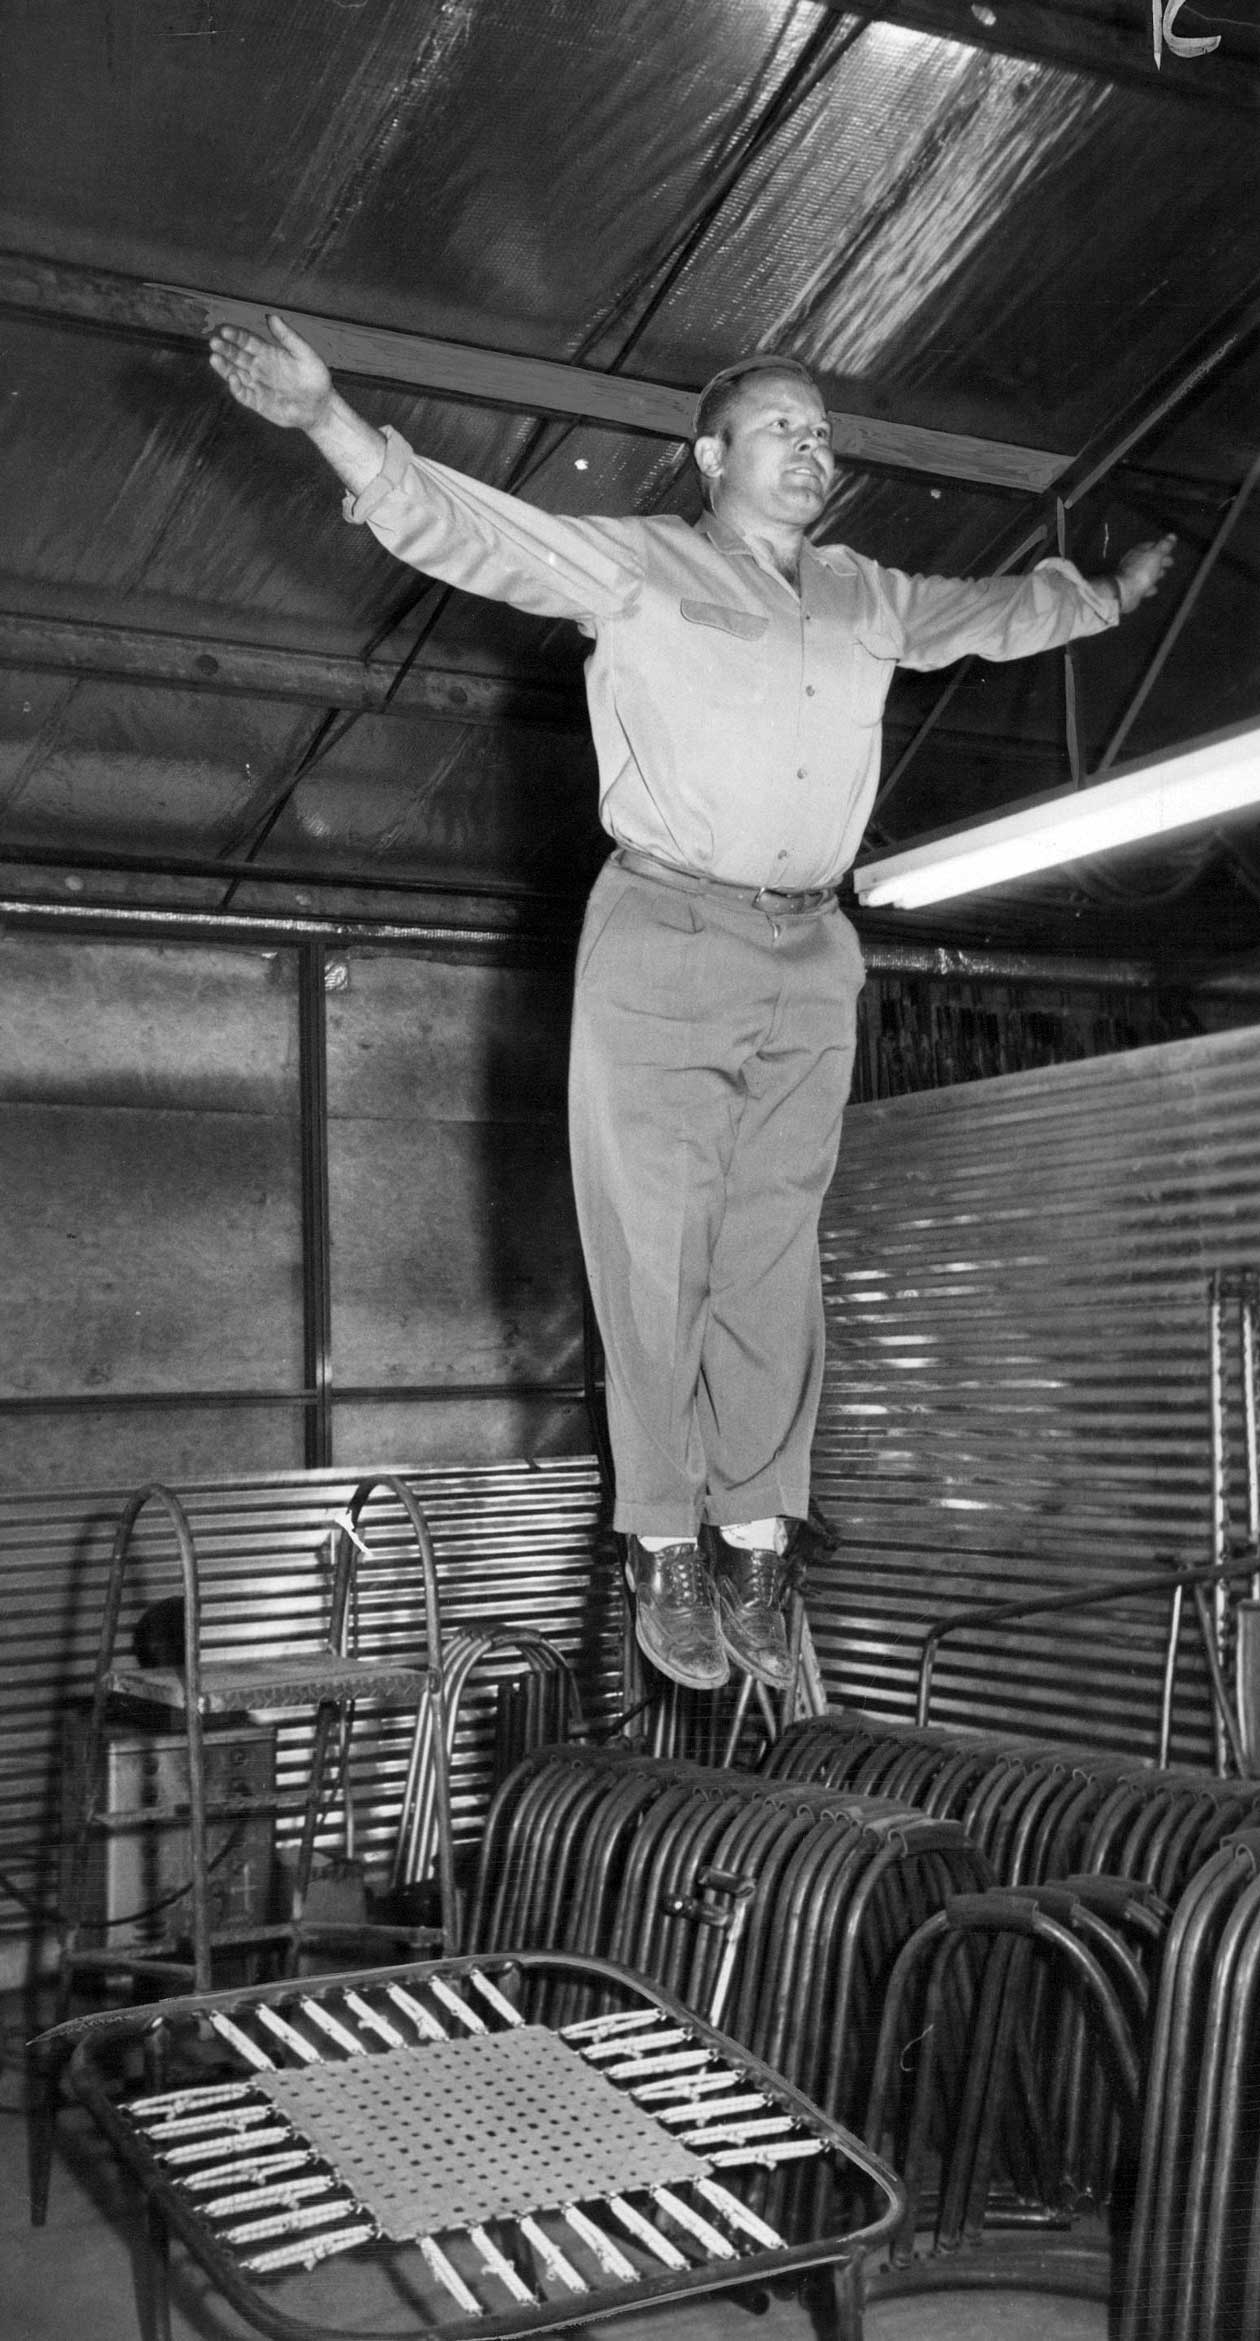 Trampolines Vintage Photos From The 1930s Considerable